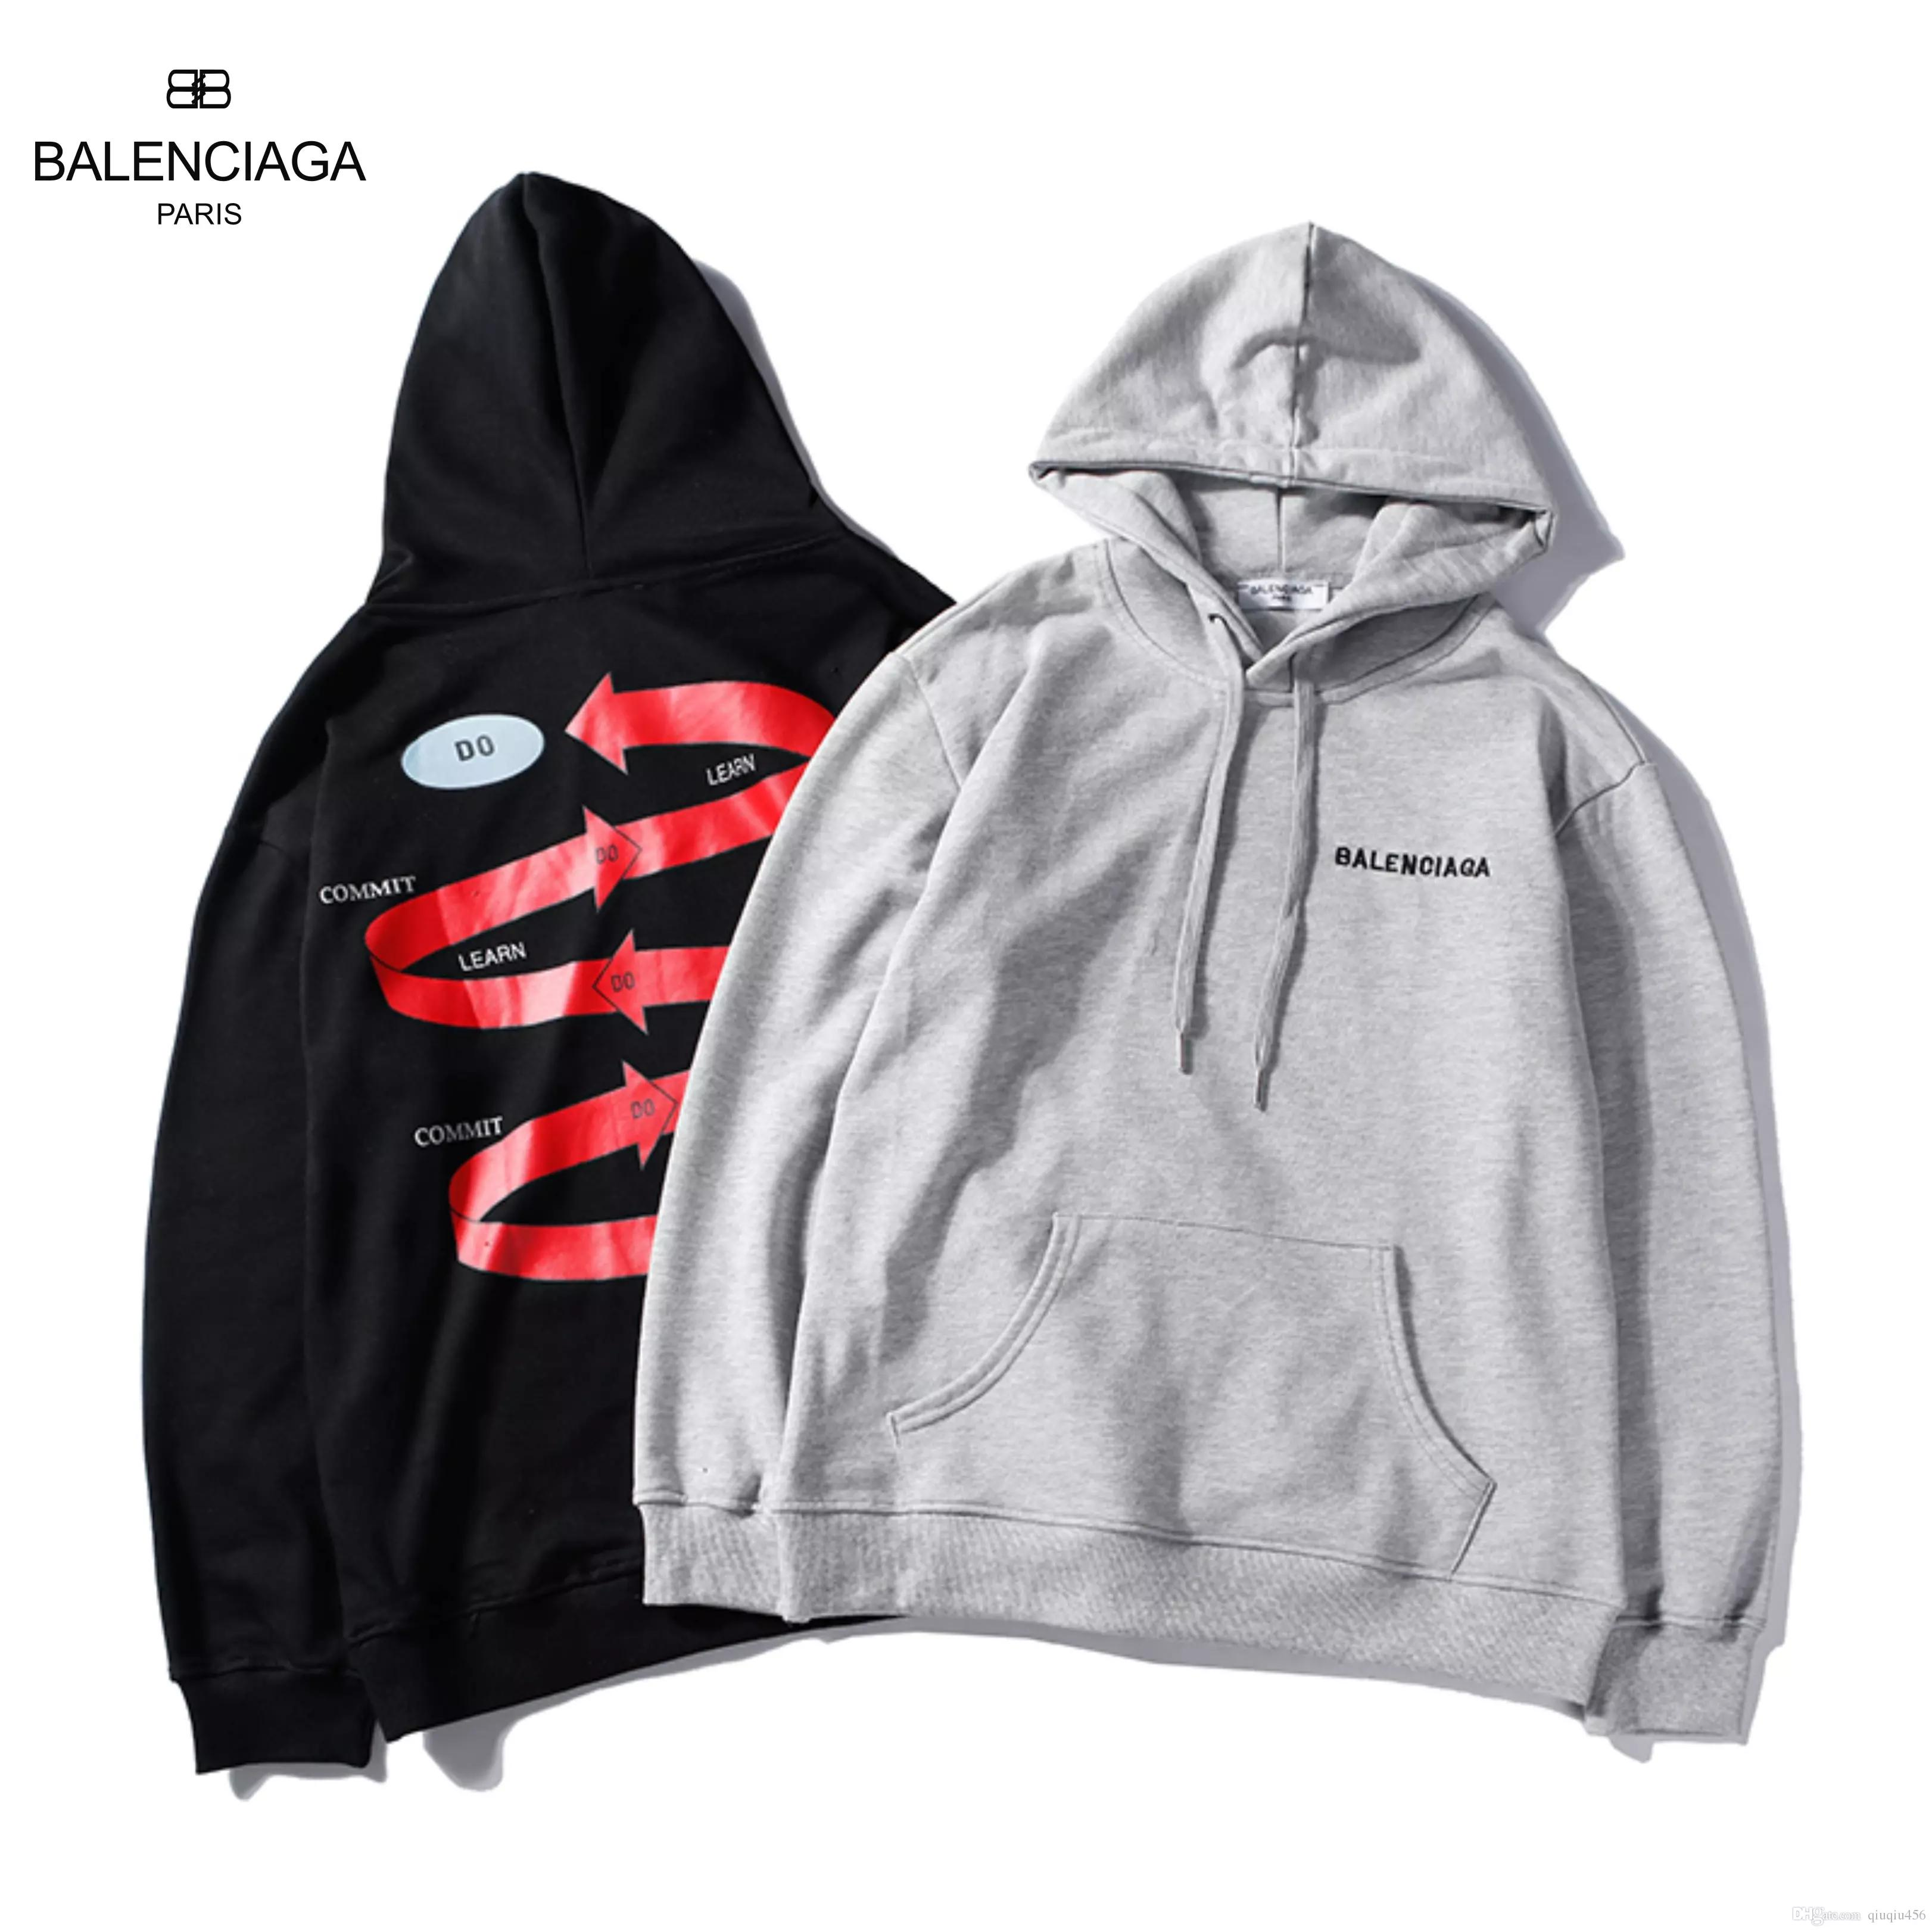 35030473a8b0 Hot Sweatshirts Green Red Striped BB MODE Men Women Hoodies Tide Classic  Spring Autumn Winter Jogging Suit Size M-XXL Online with $73.15/Piece on ...